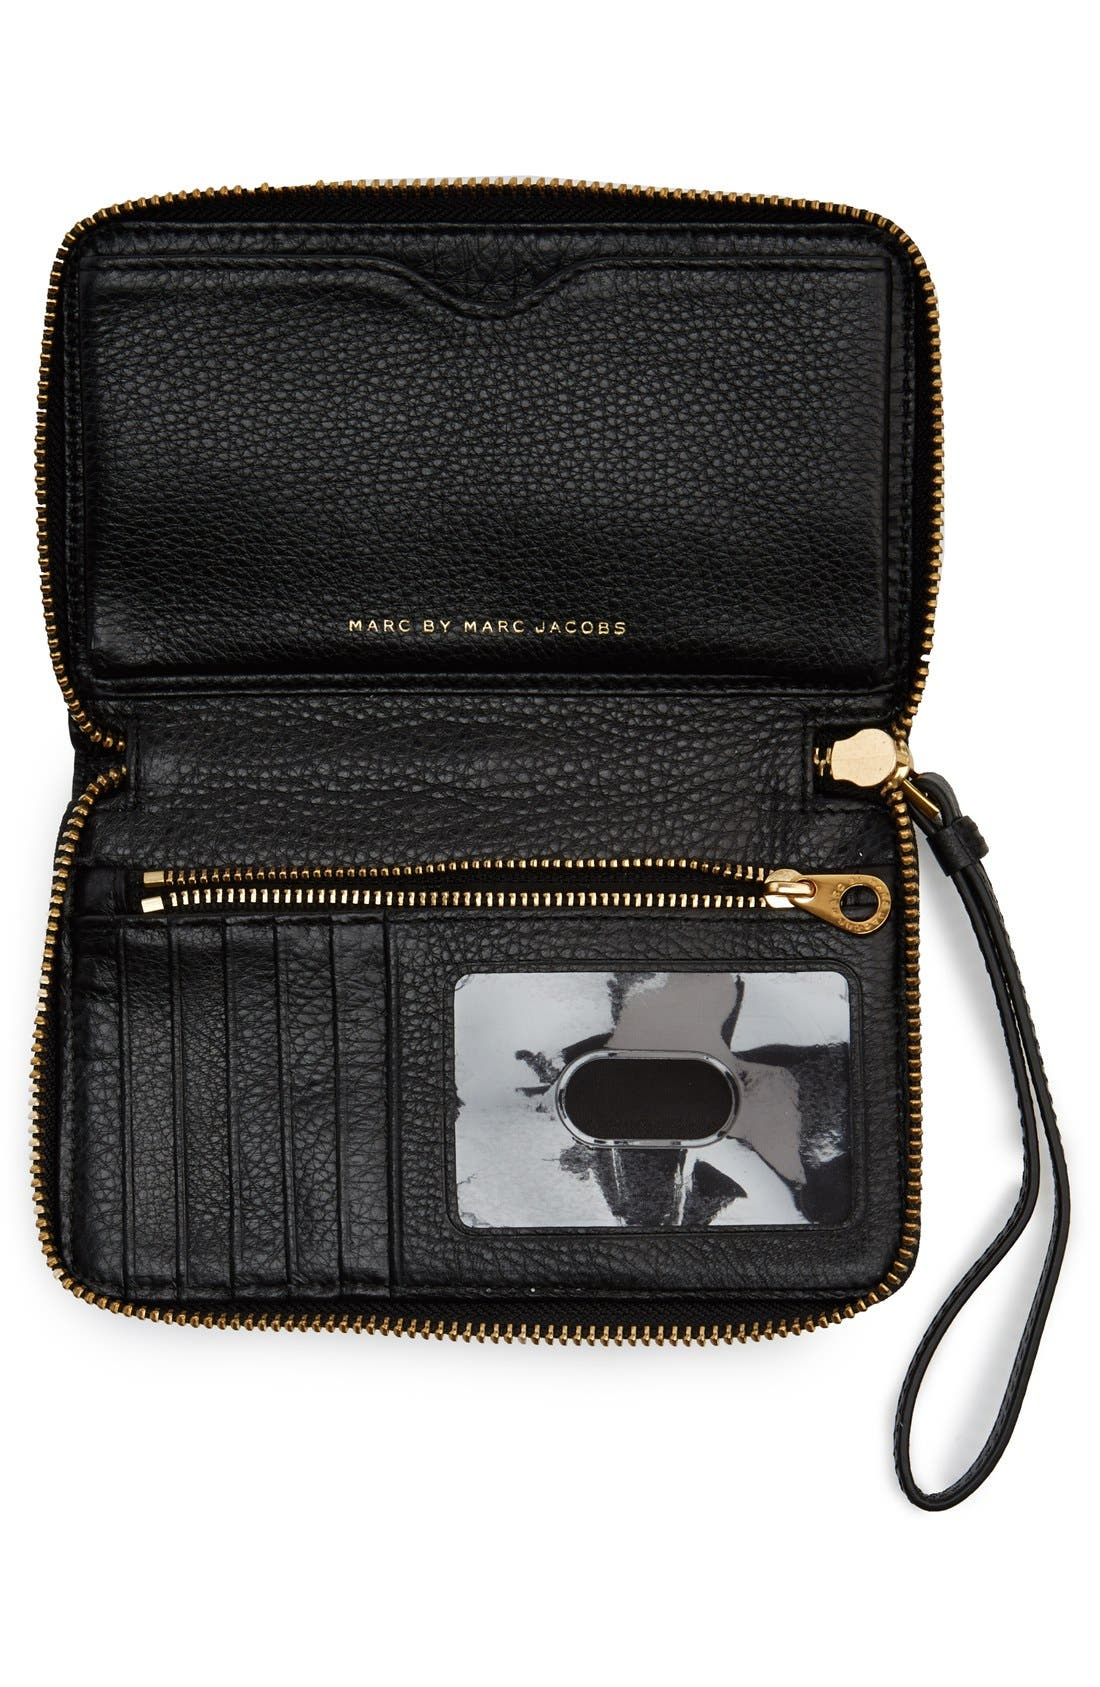 MARC JACOBS,                             MARC BY MARC JACOBS 'Too Hot To Handle - Wingman' Wallet Wristlet,                             Alternate thumbnail 5, color,                             001